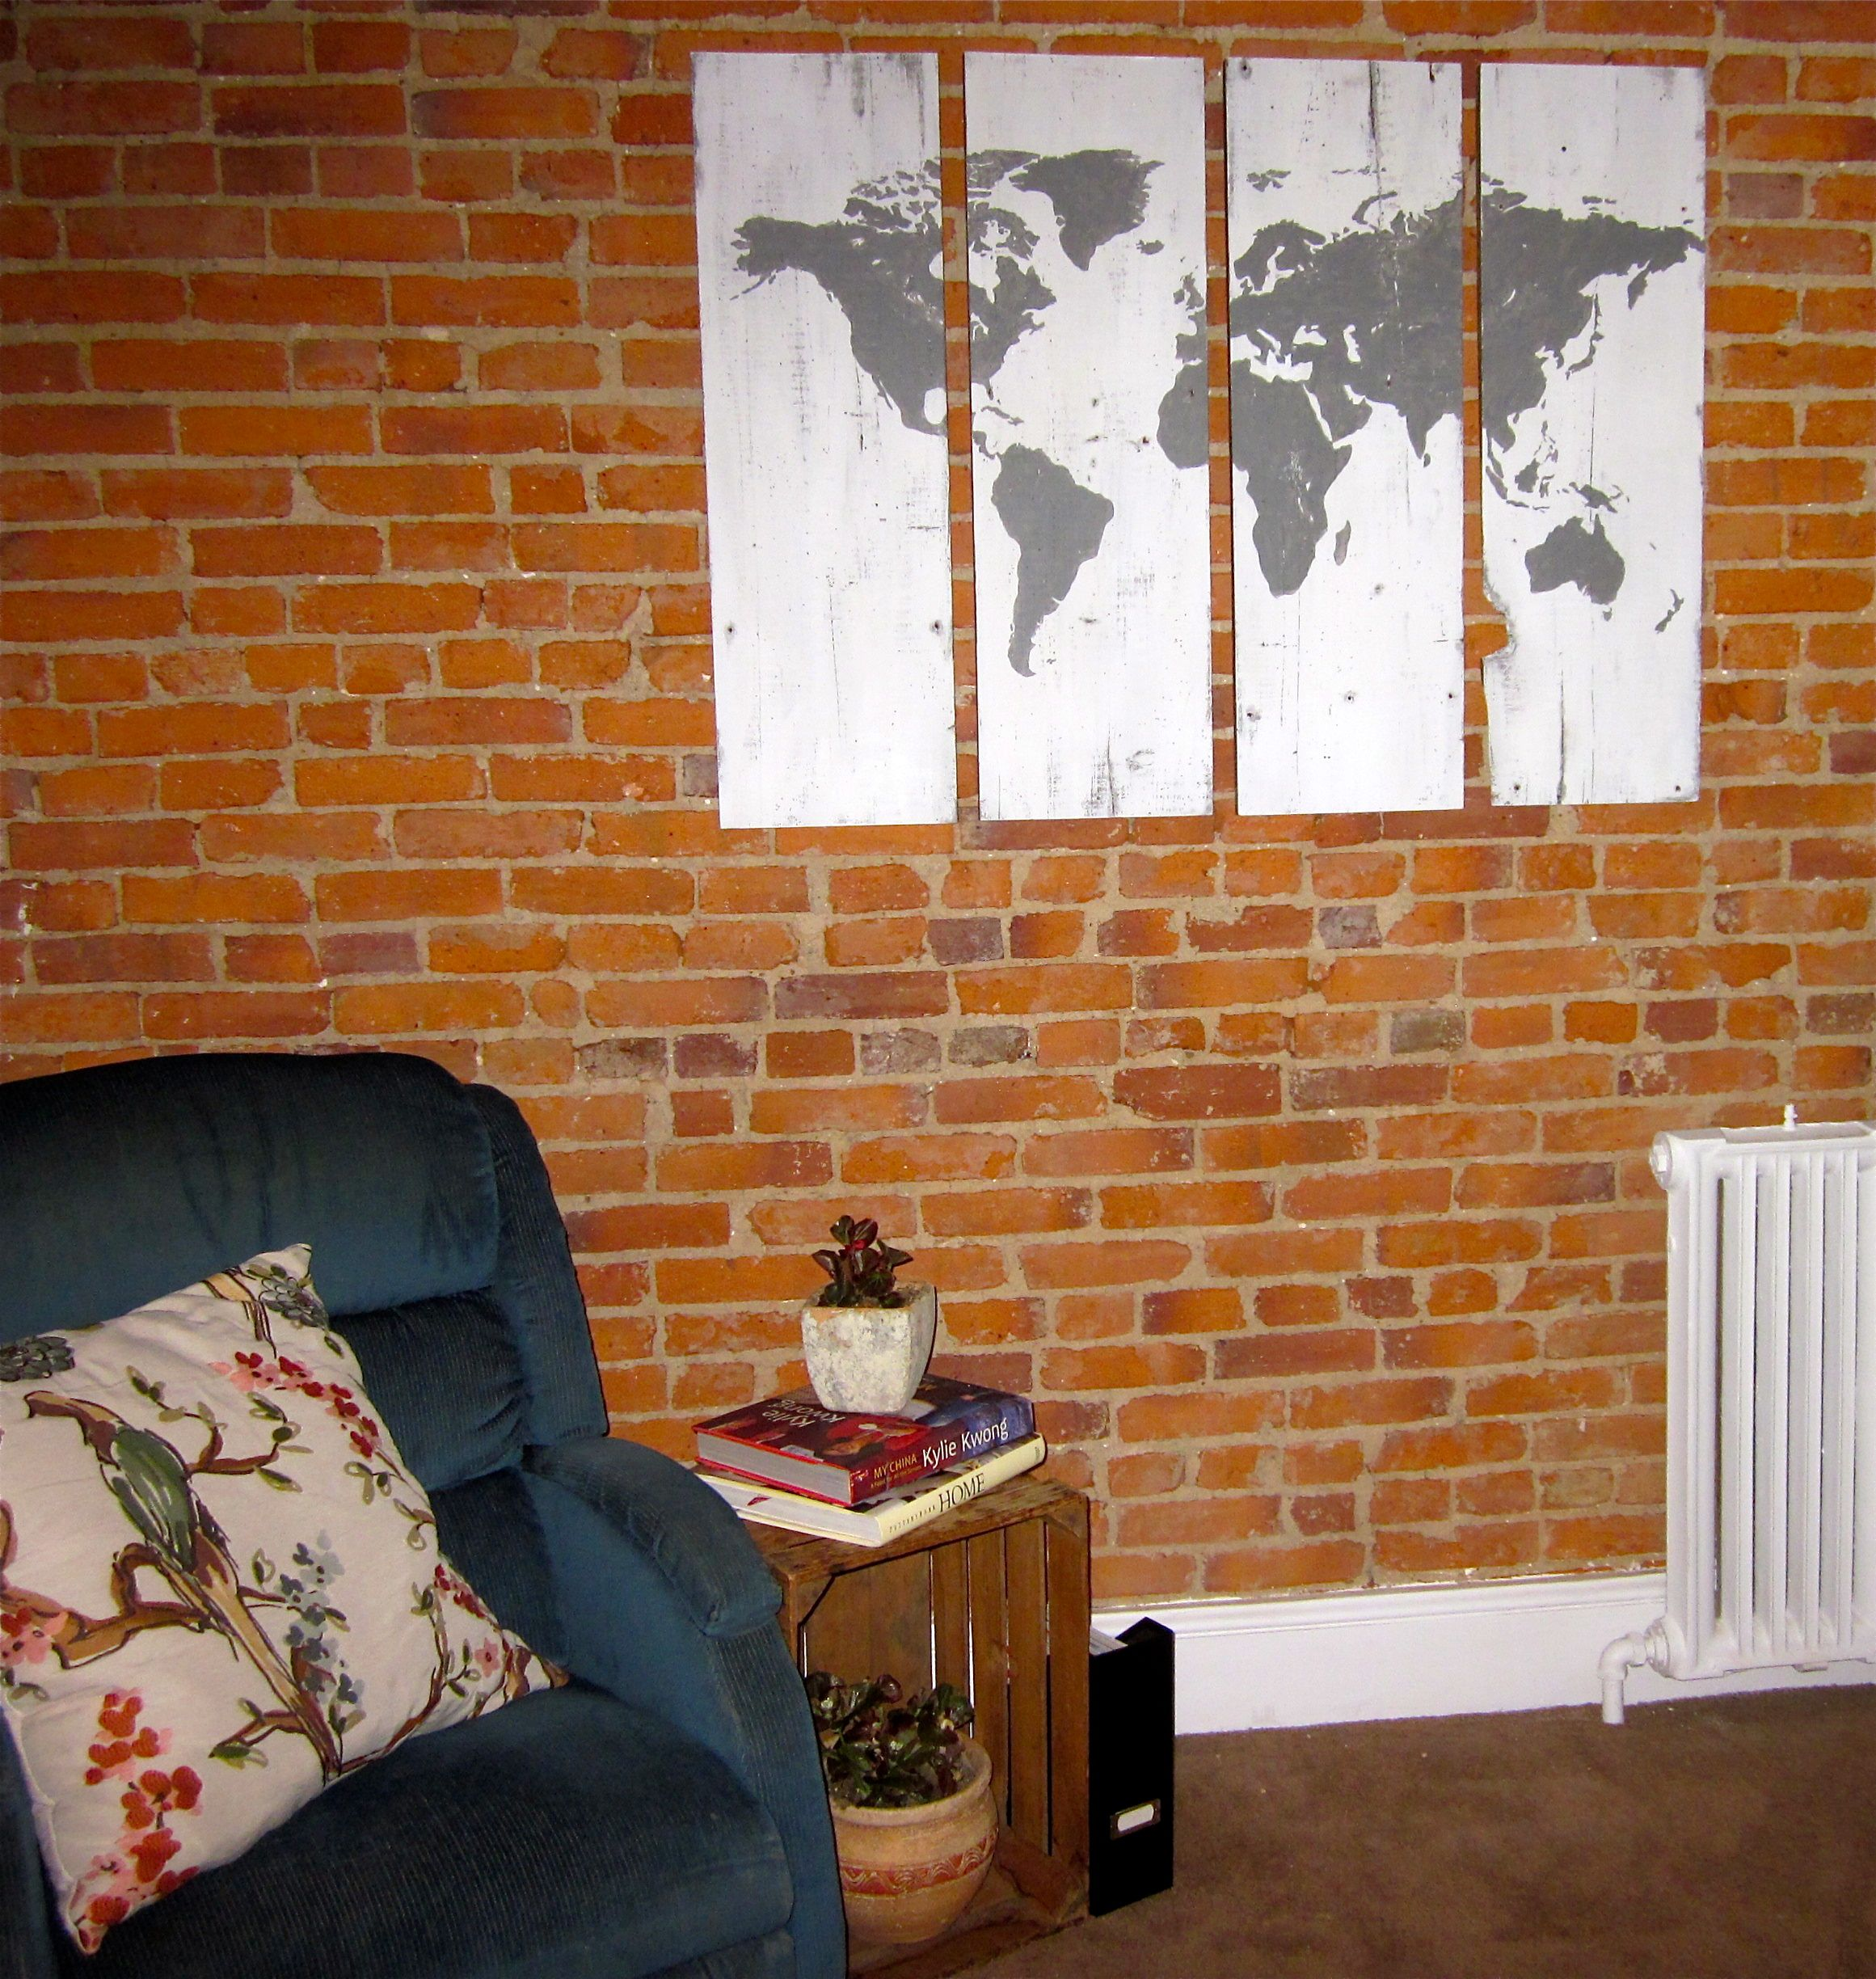 Hand-painted World Map https://www.etsy.com/listing/157795371/world-map-handpainted-wood-sign